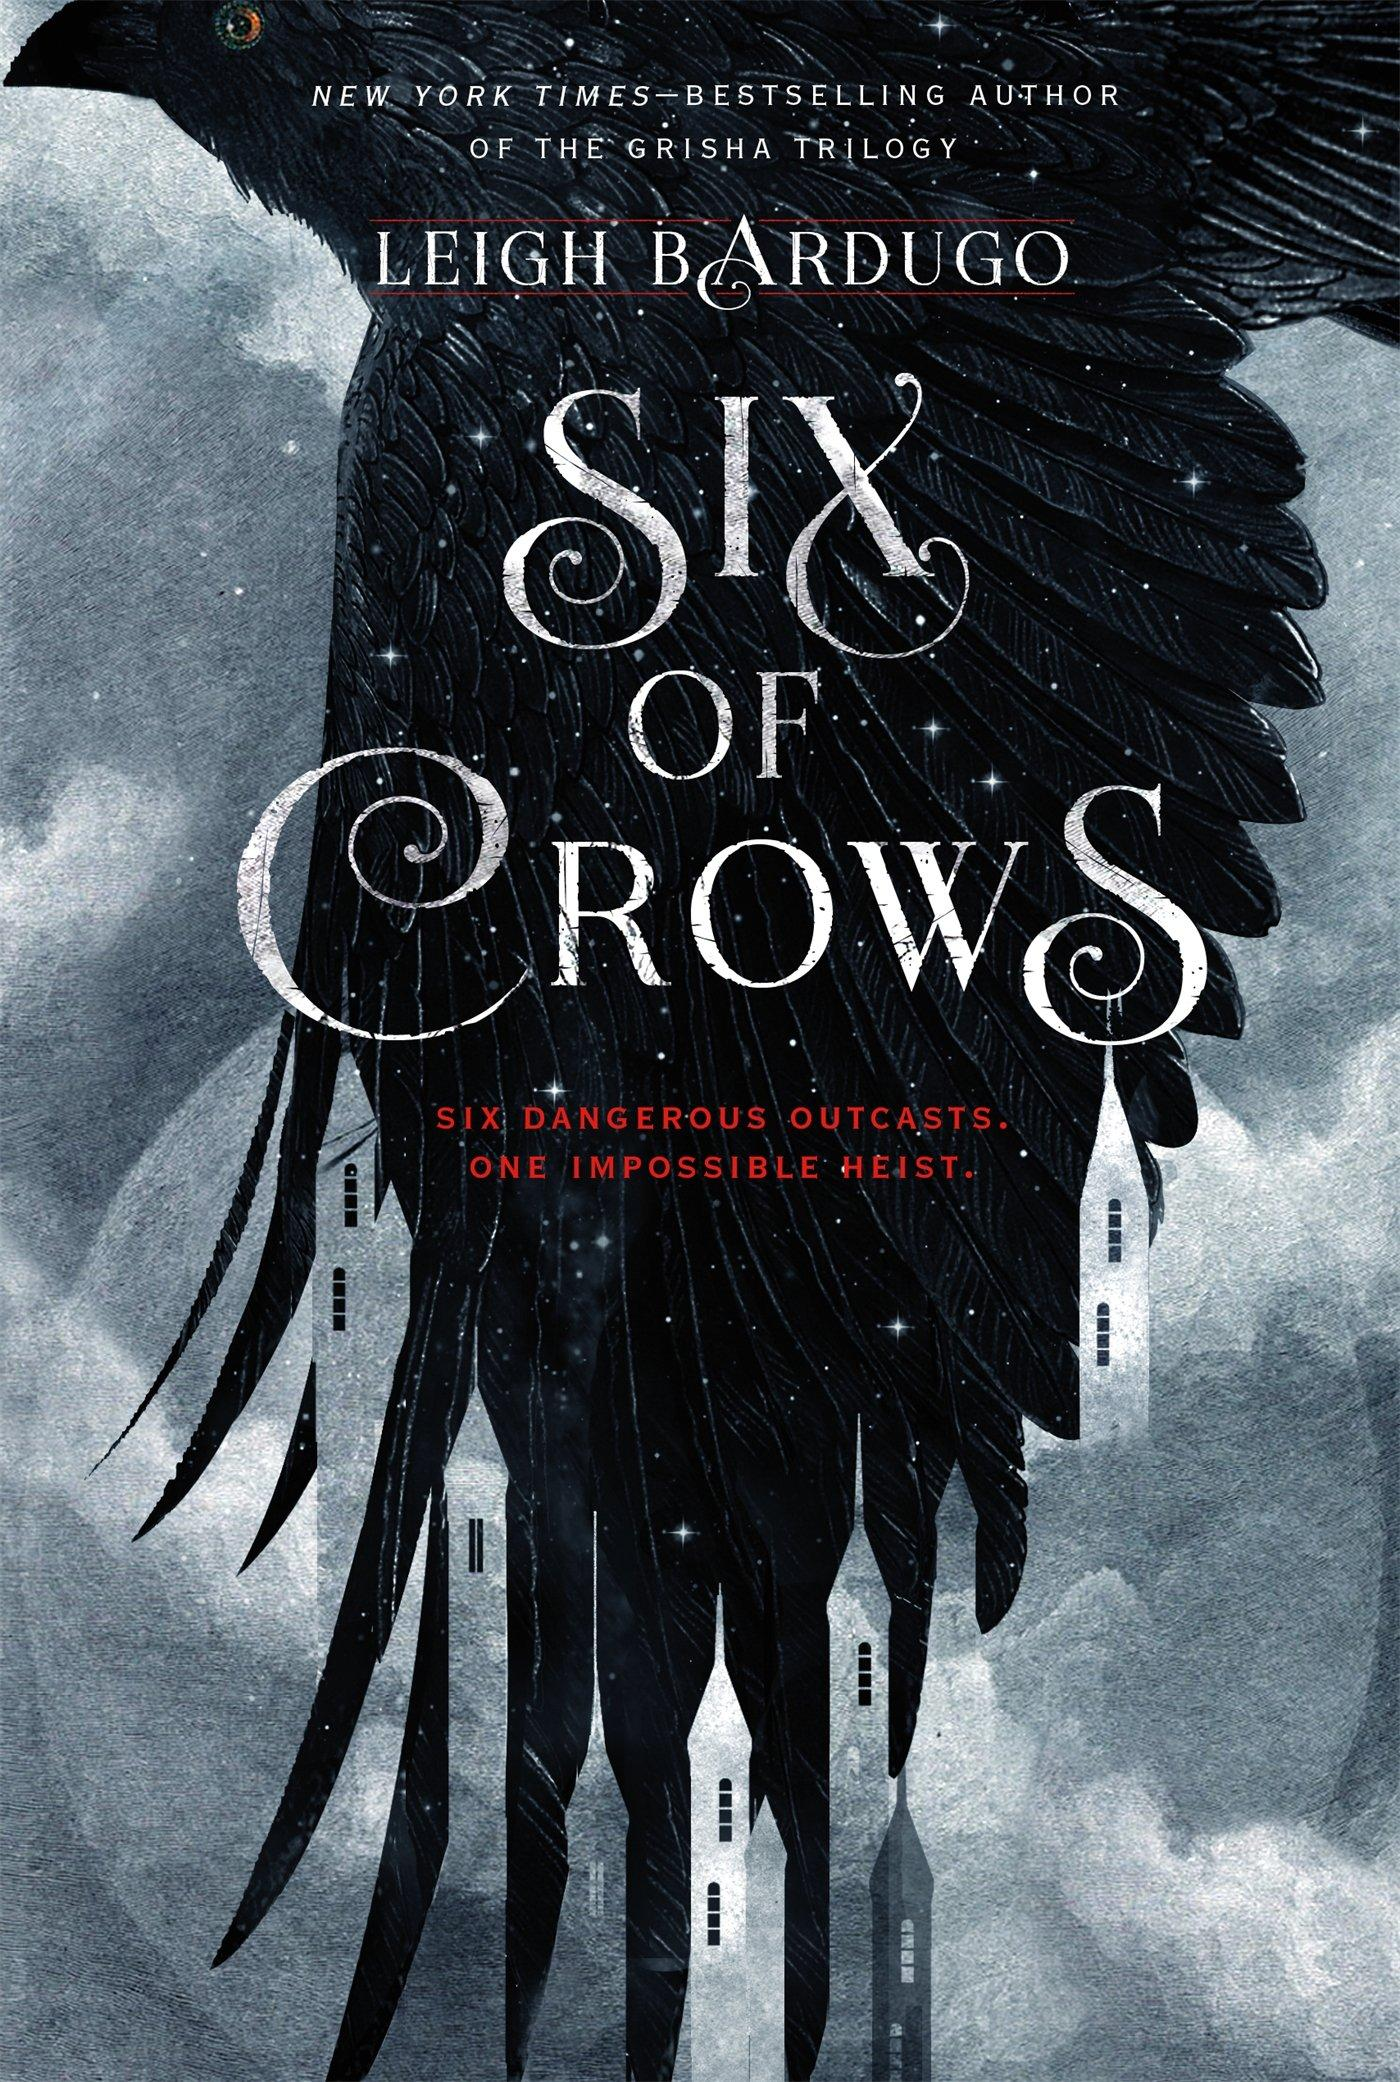 Image de l'article « 5 bonnes raisons de noter Six of Crows dans vos agendas »